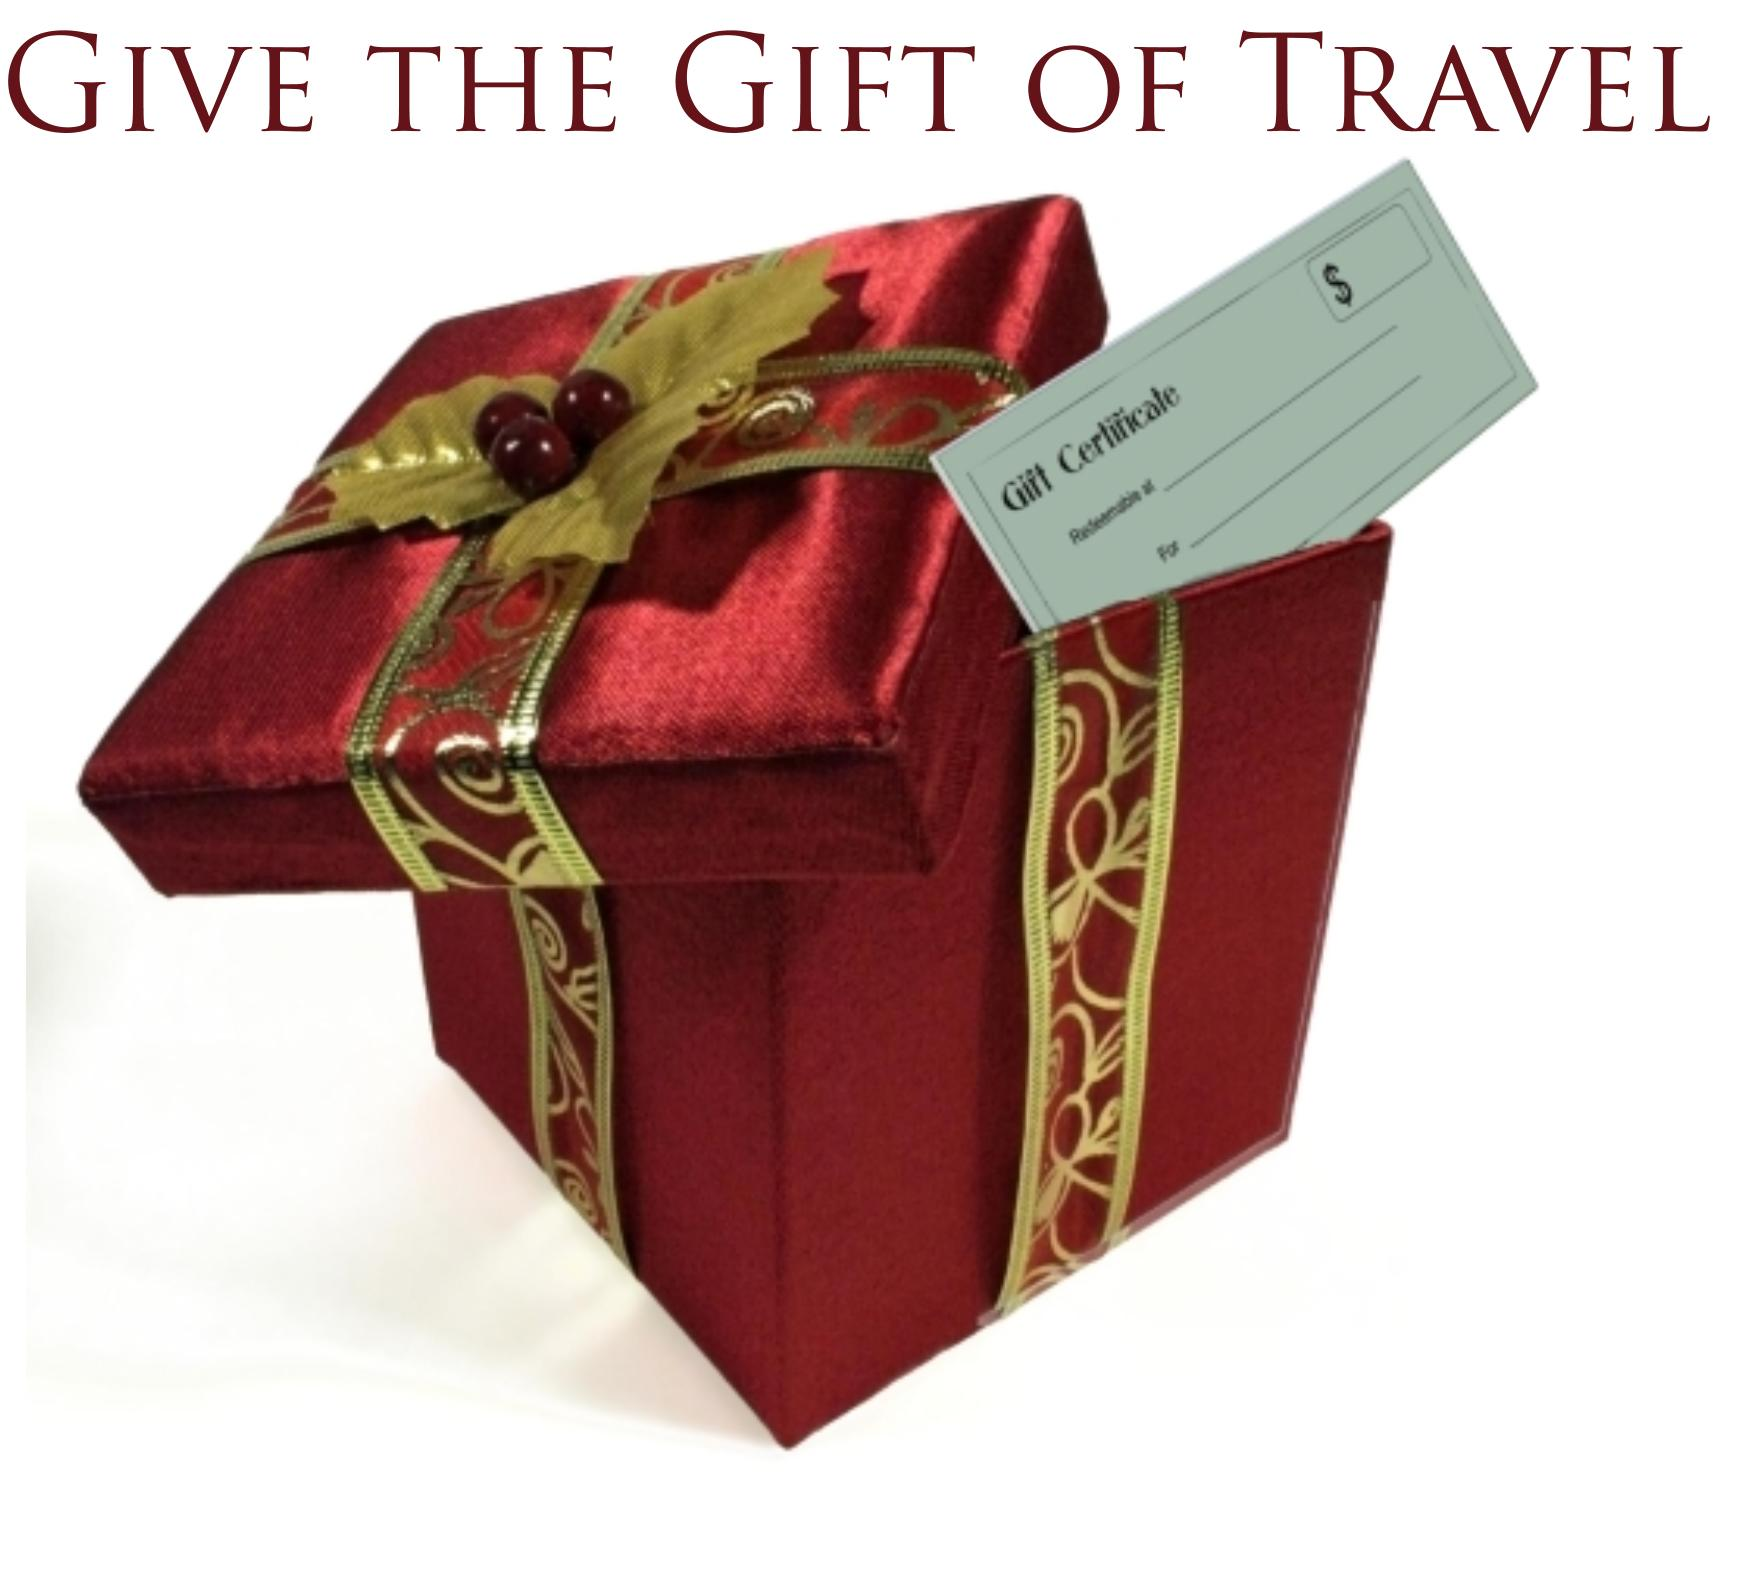 Wedding Gift List Travel Agents : Celtic Tours gift certificate is the perfect gift for your loved ...